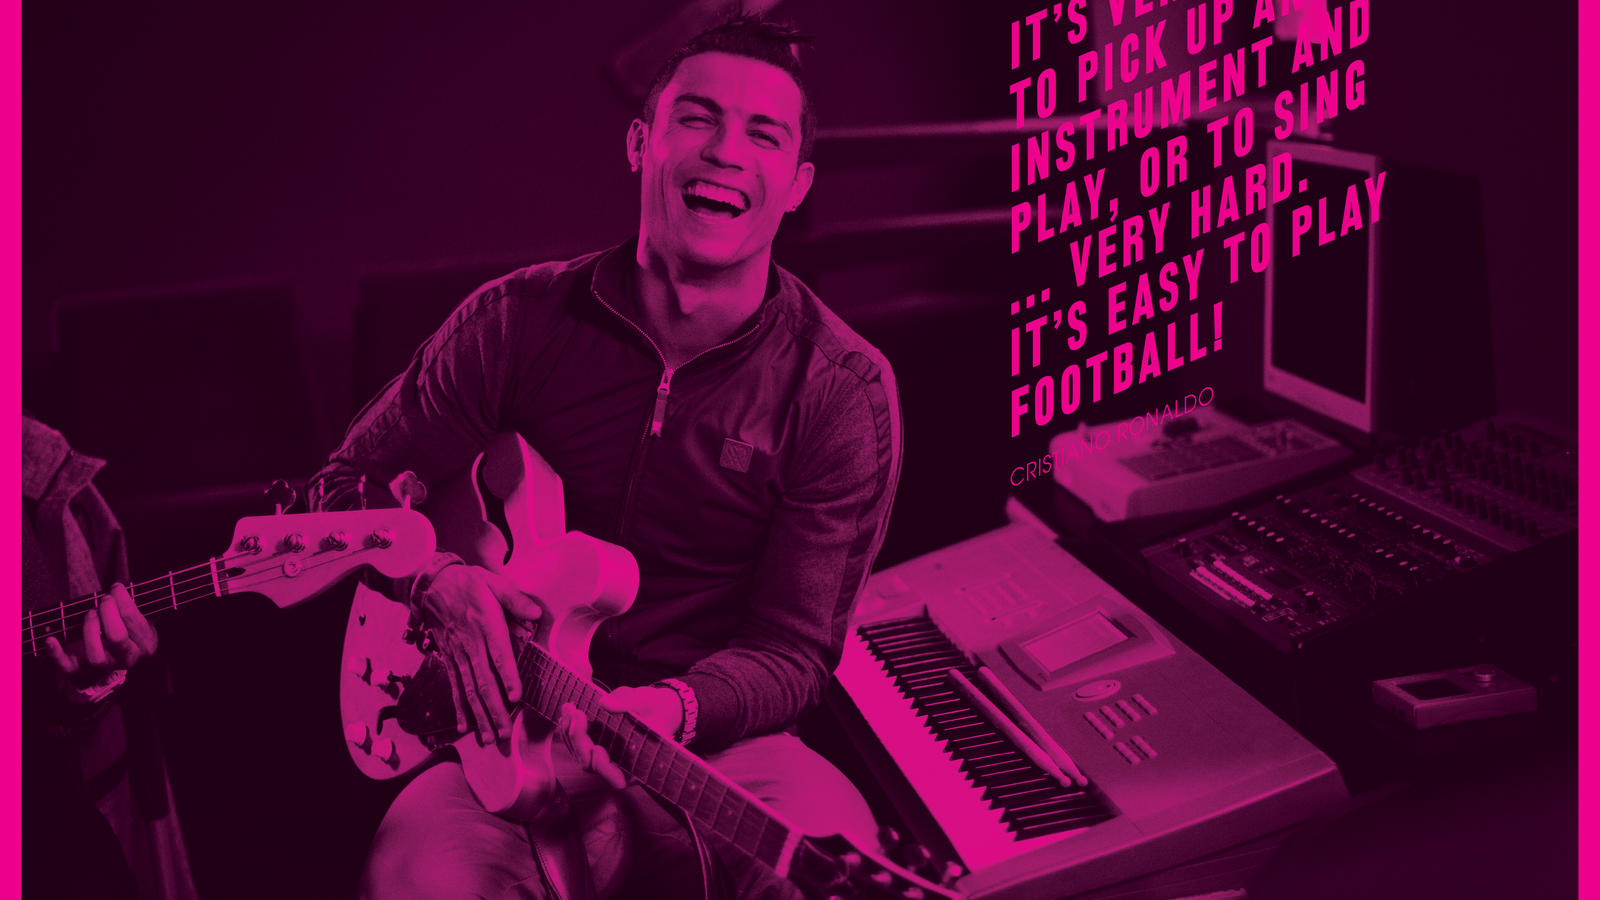 Nike_Soccer_CR7_Lookbook_16